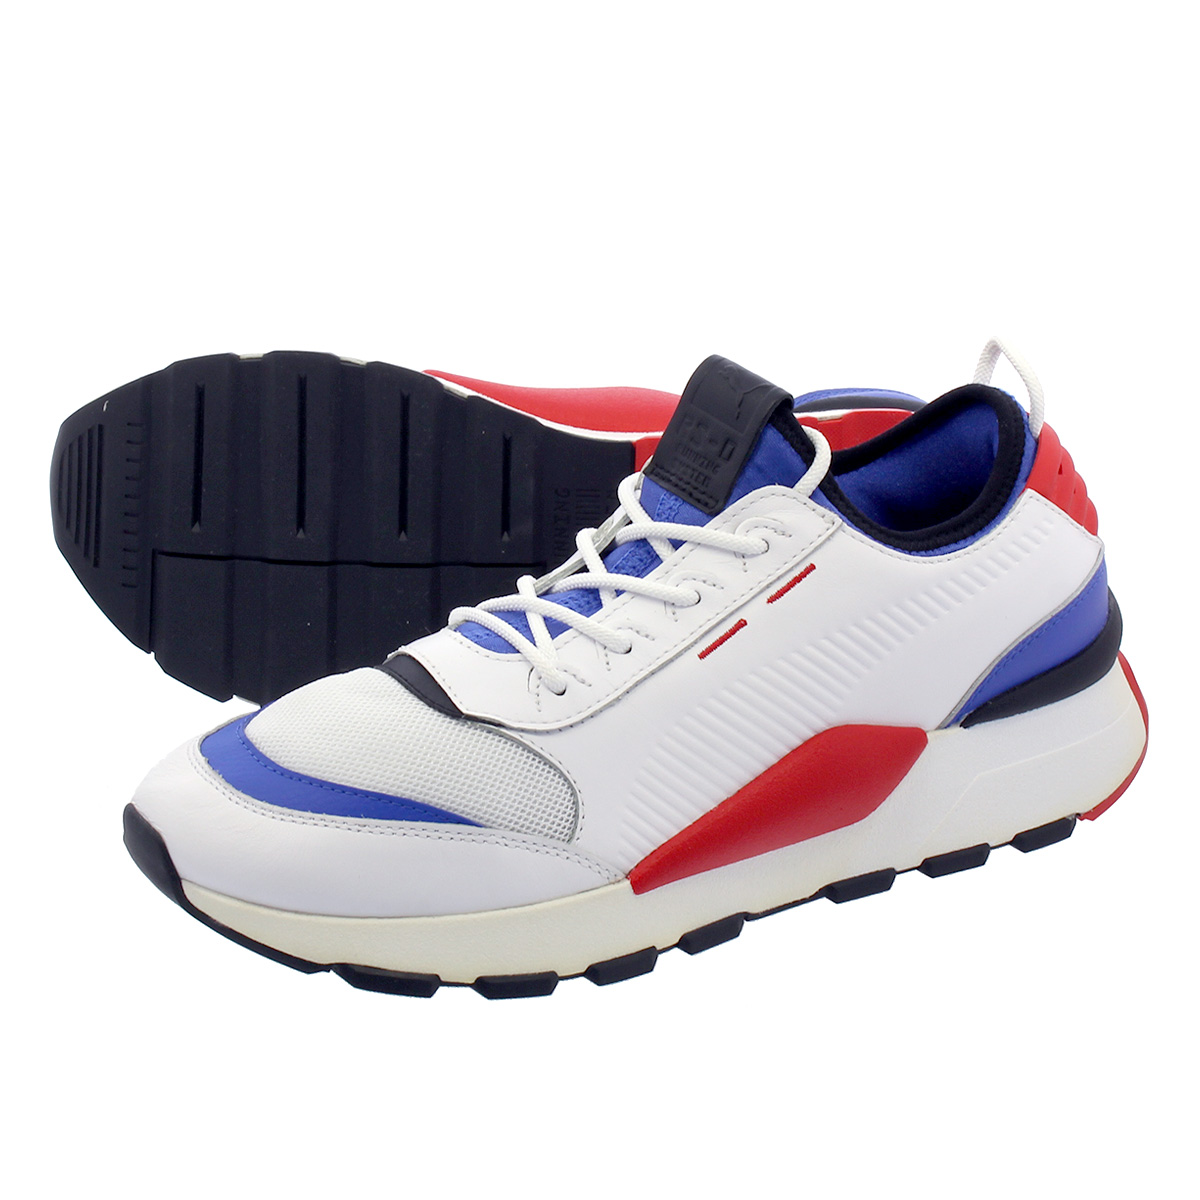 f1675ed962761c LOWTEX PLUS  PUMA RS-0 SOUND Puma RS-0 sound PUMA WHITE DAZZLING BLUE HIGH  RISK RED 366